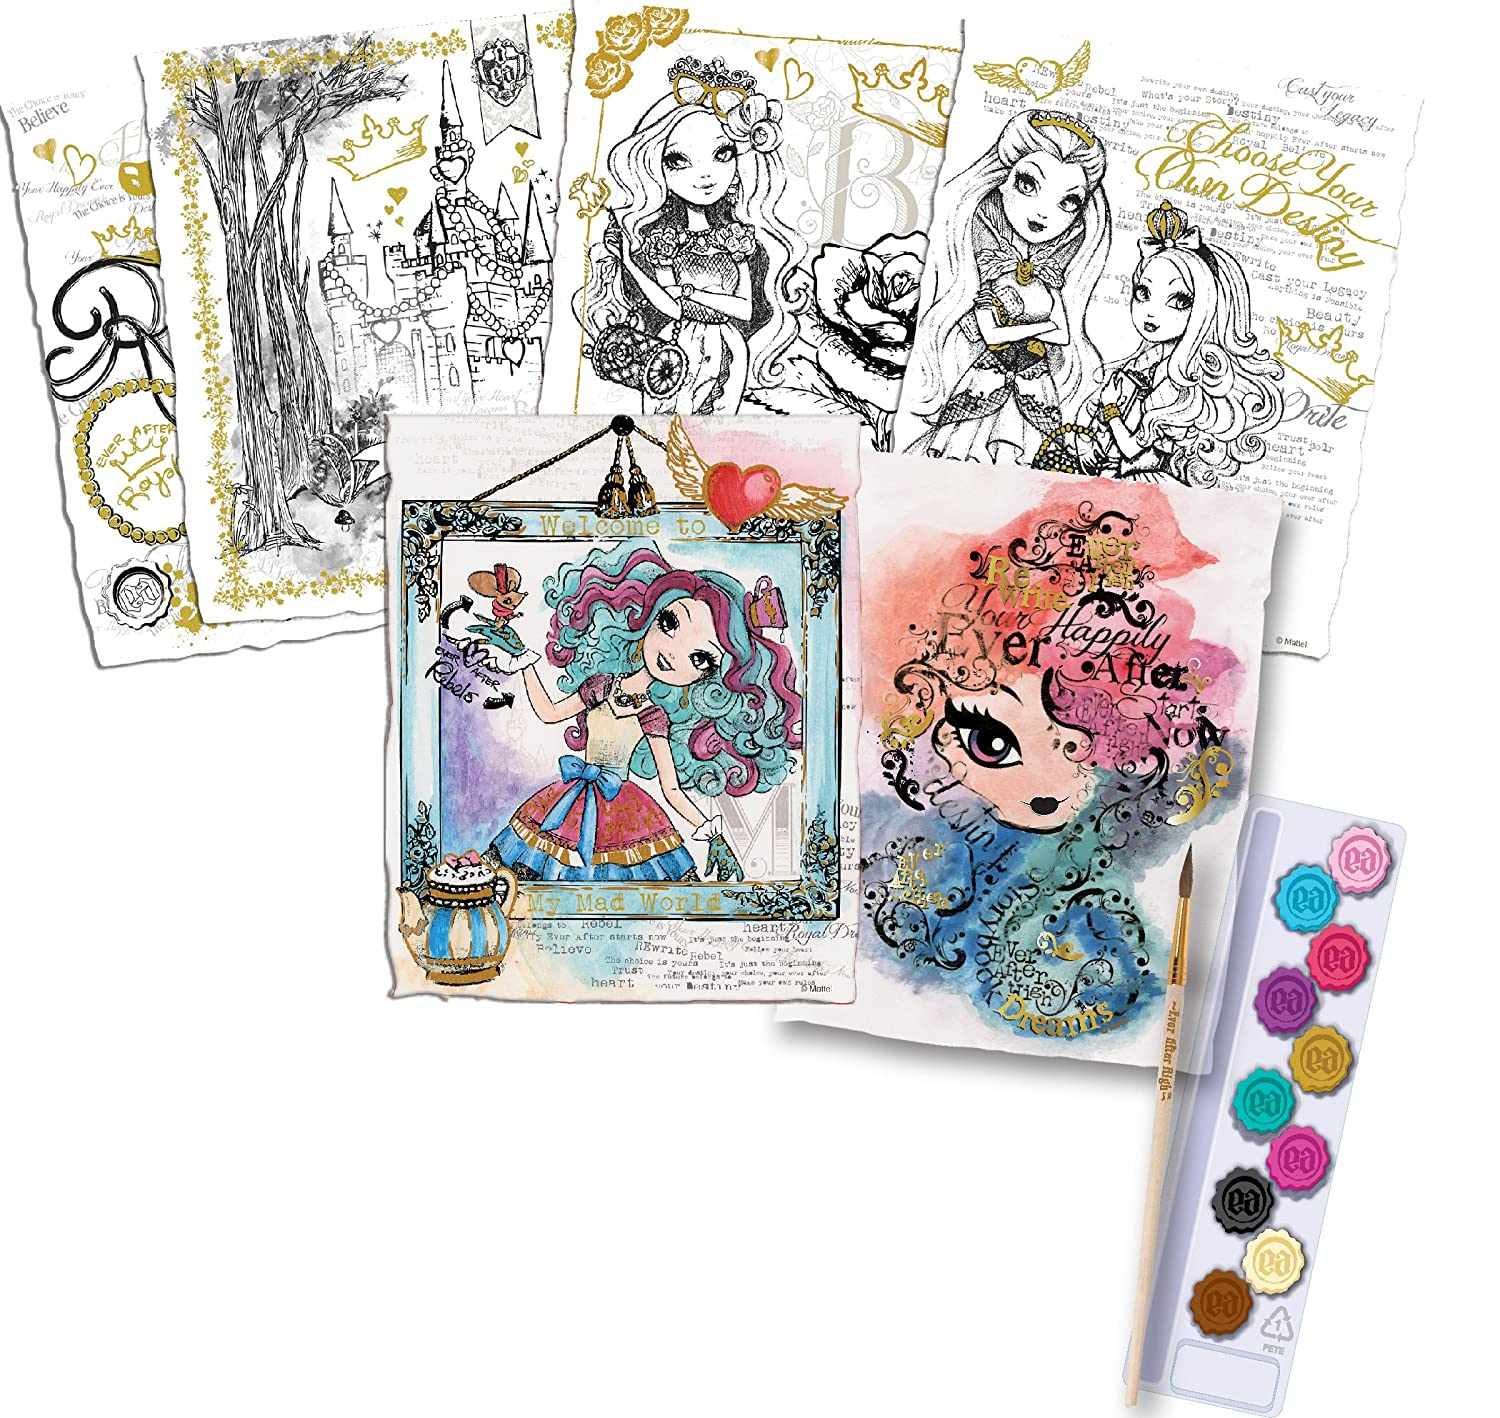 Watercolor artist magazine customer service - Amazon Com Fashion Angels Ever After High Paint Your Destiny Watercolor Artist Tote Toys Games